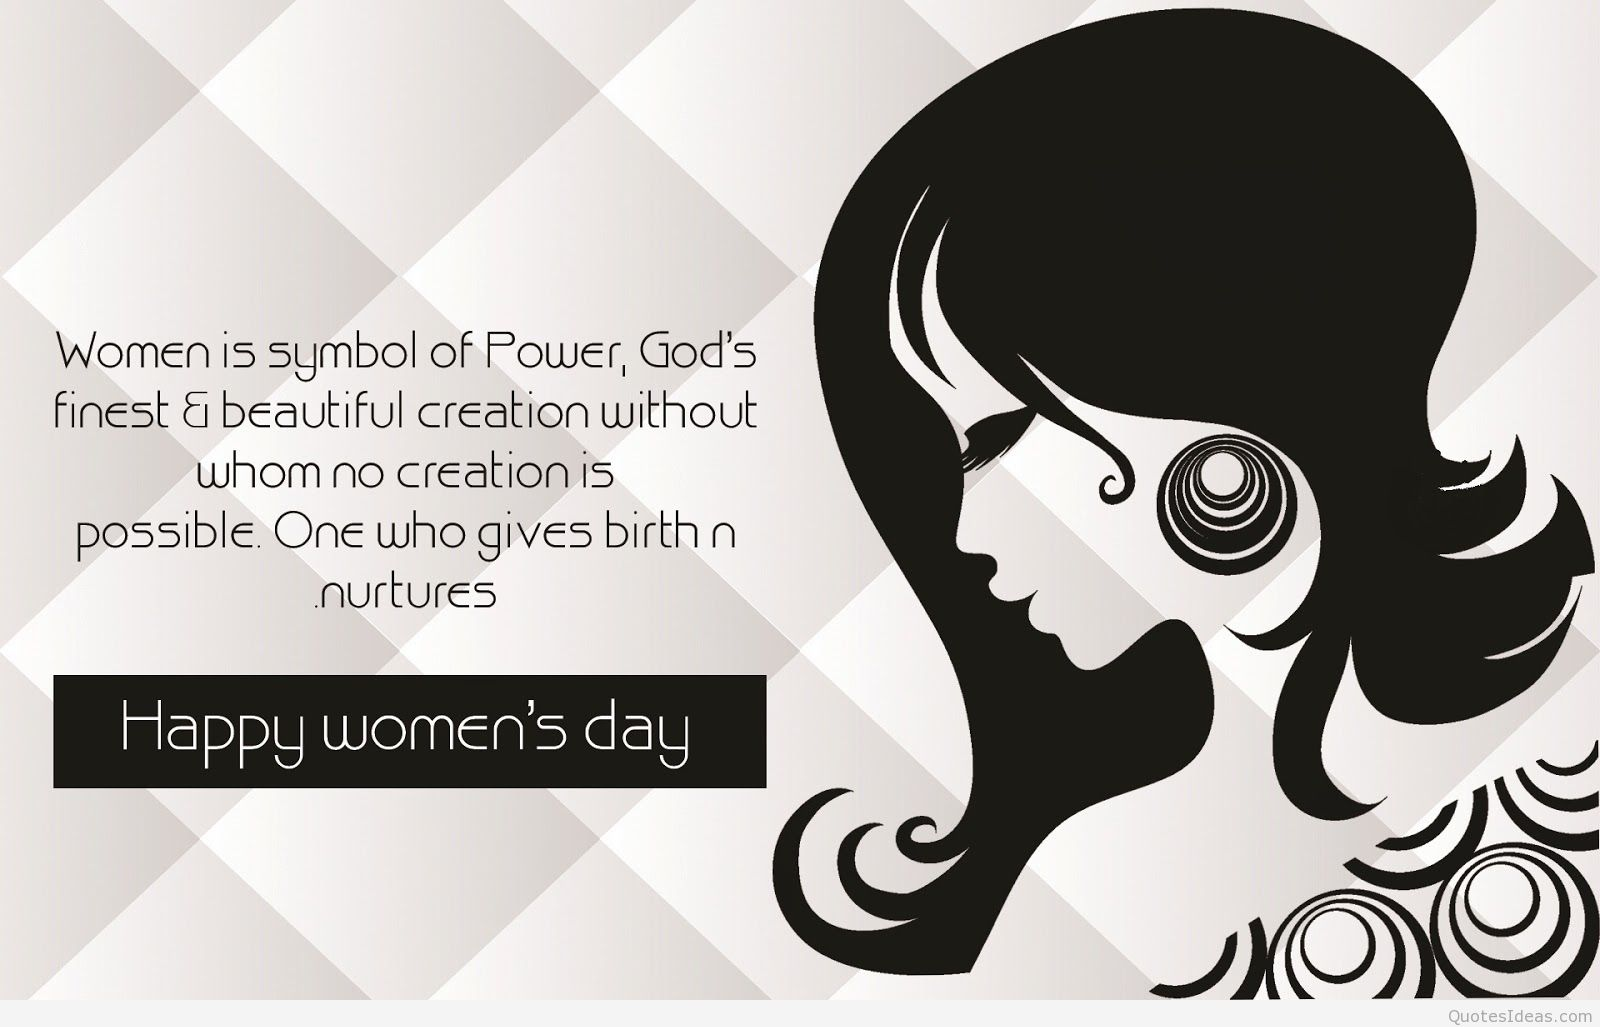 Womens day quotes images wallpapers sayings and wishes 1600x1027